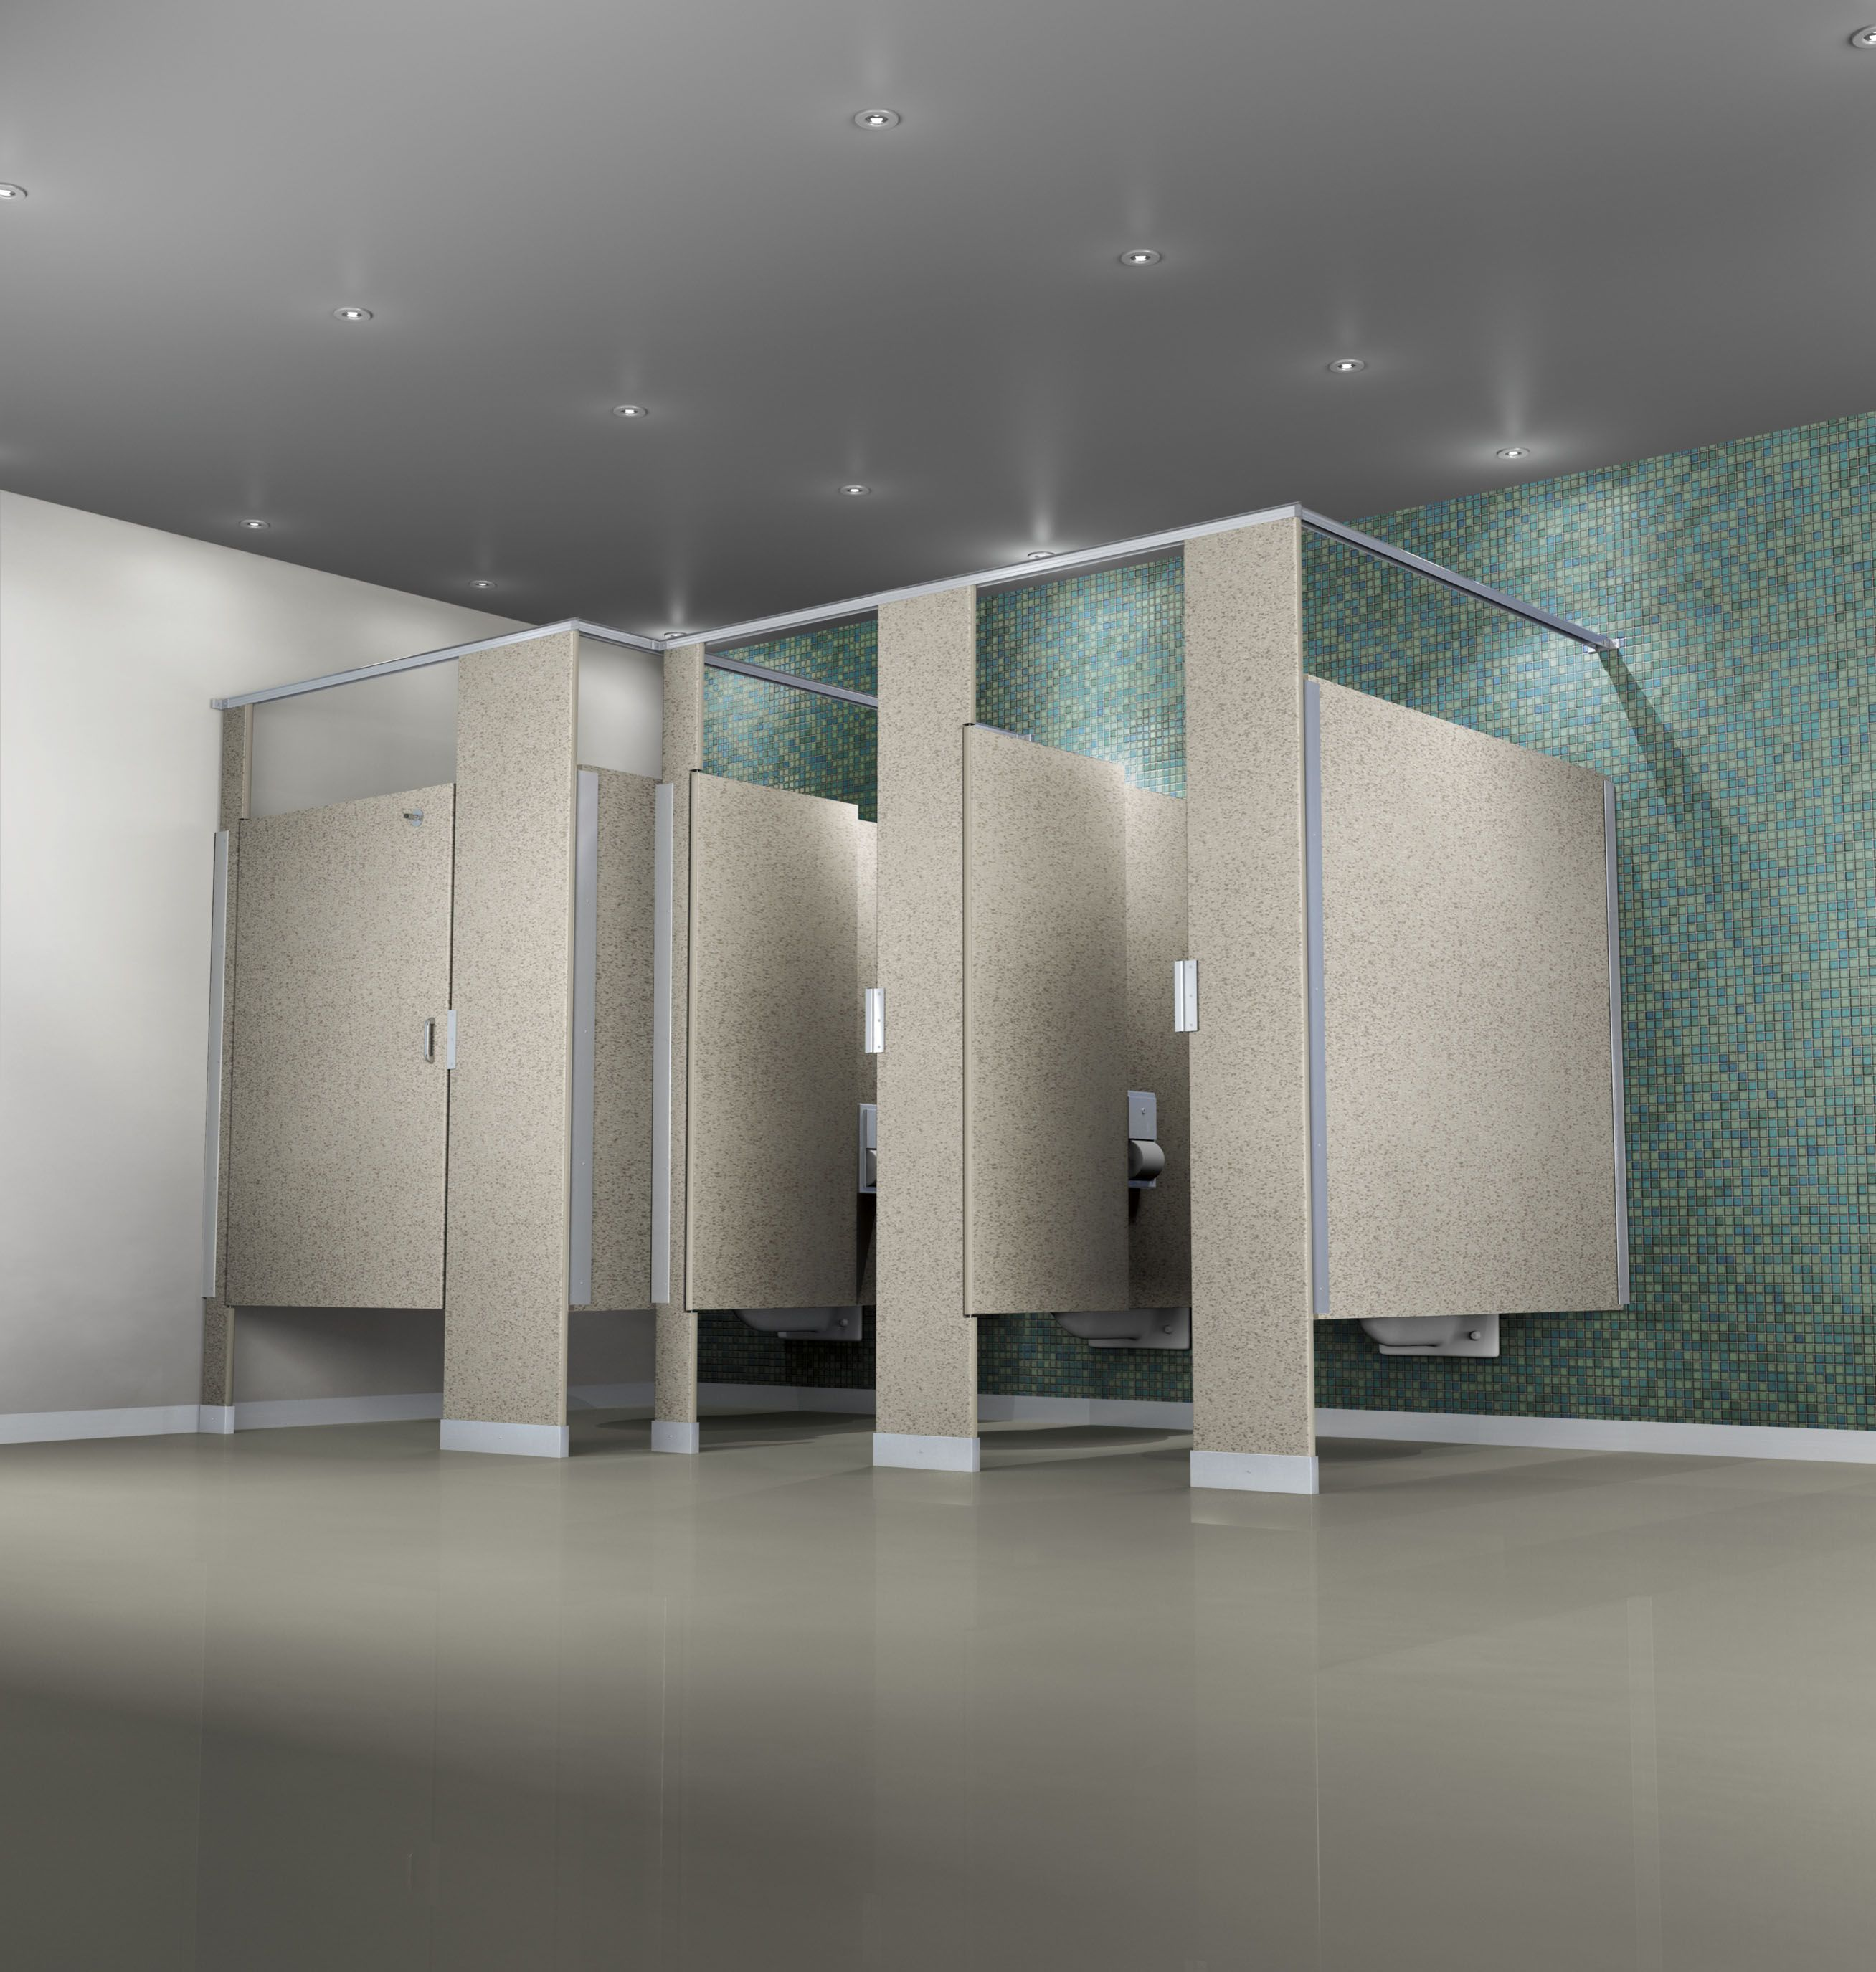 restroom bobrick equipment partition public toilet commercial partitions asi bathroom stall accessories dividers ideas hardware